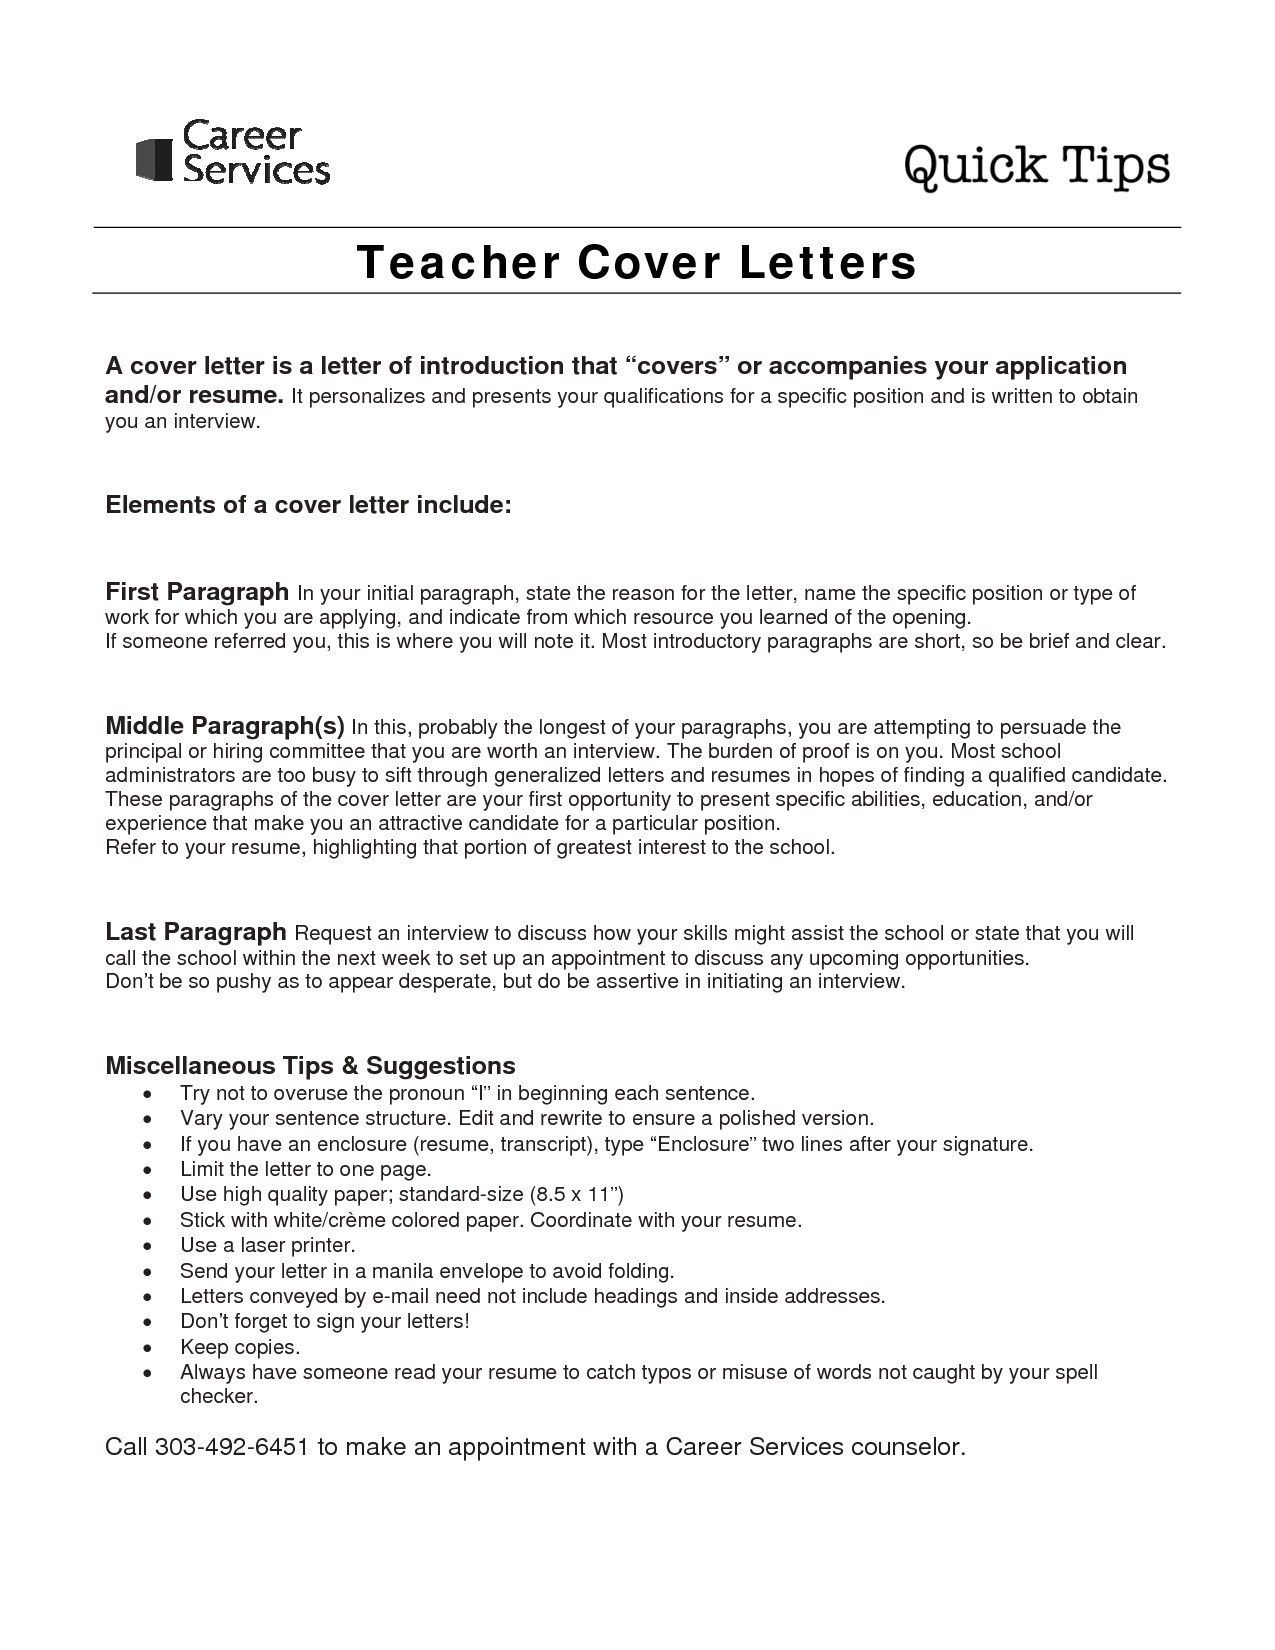 26 Cover Letters For Teachers In 2020 With Images Cover